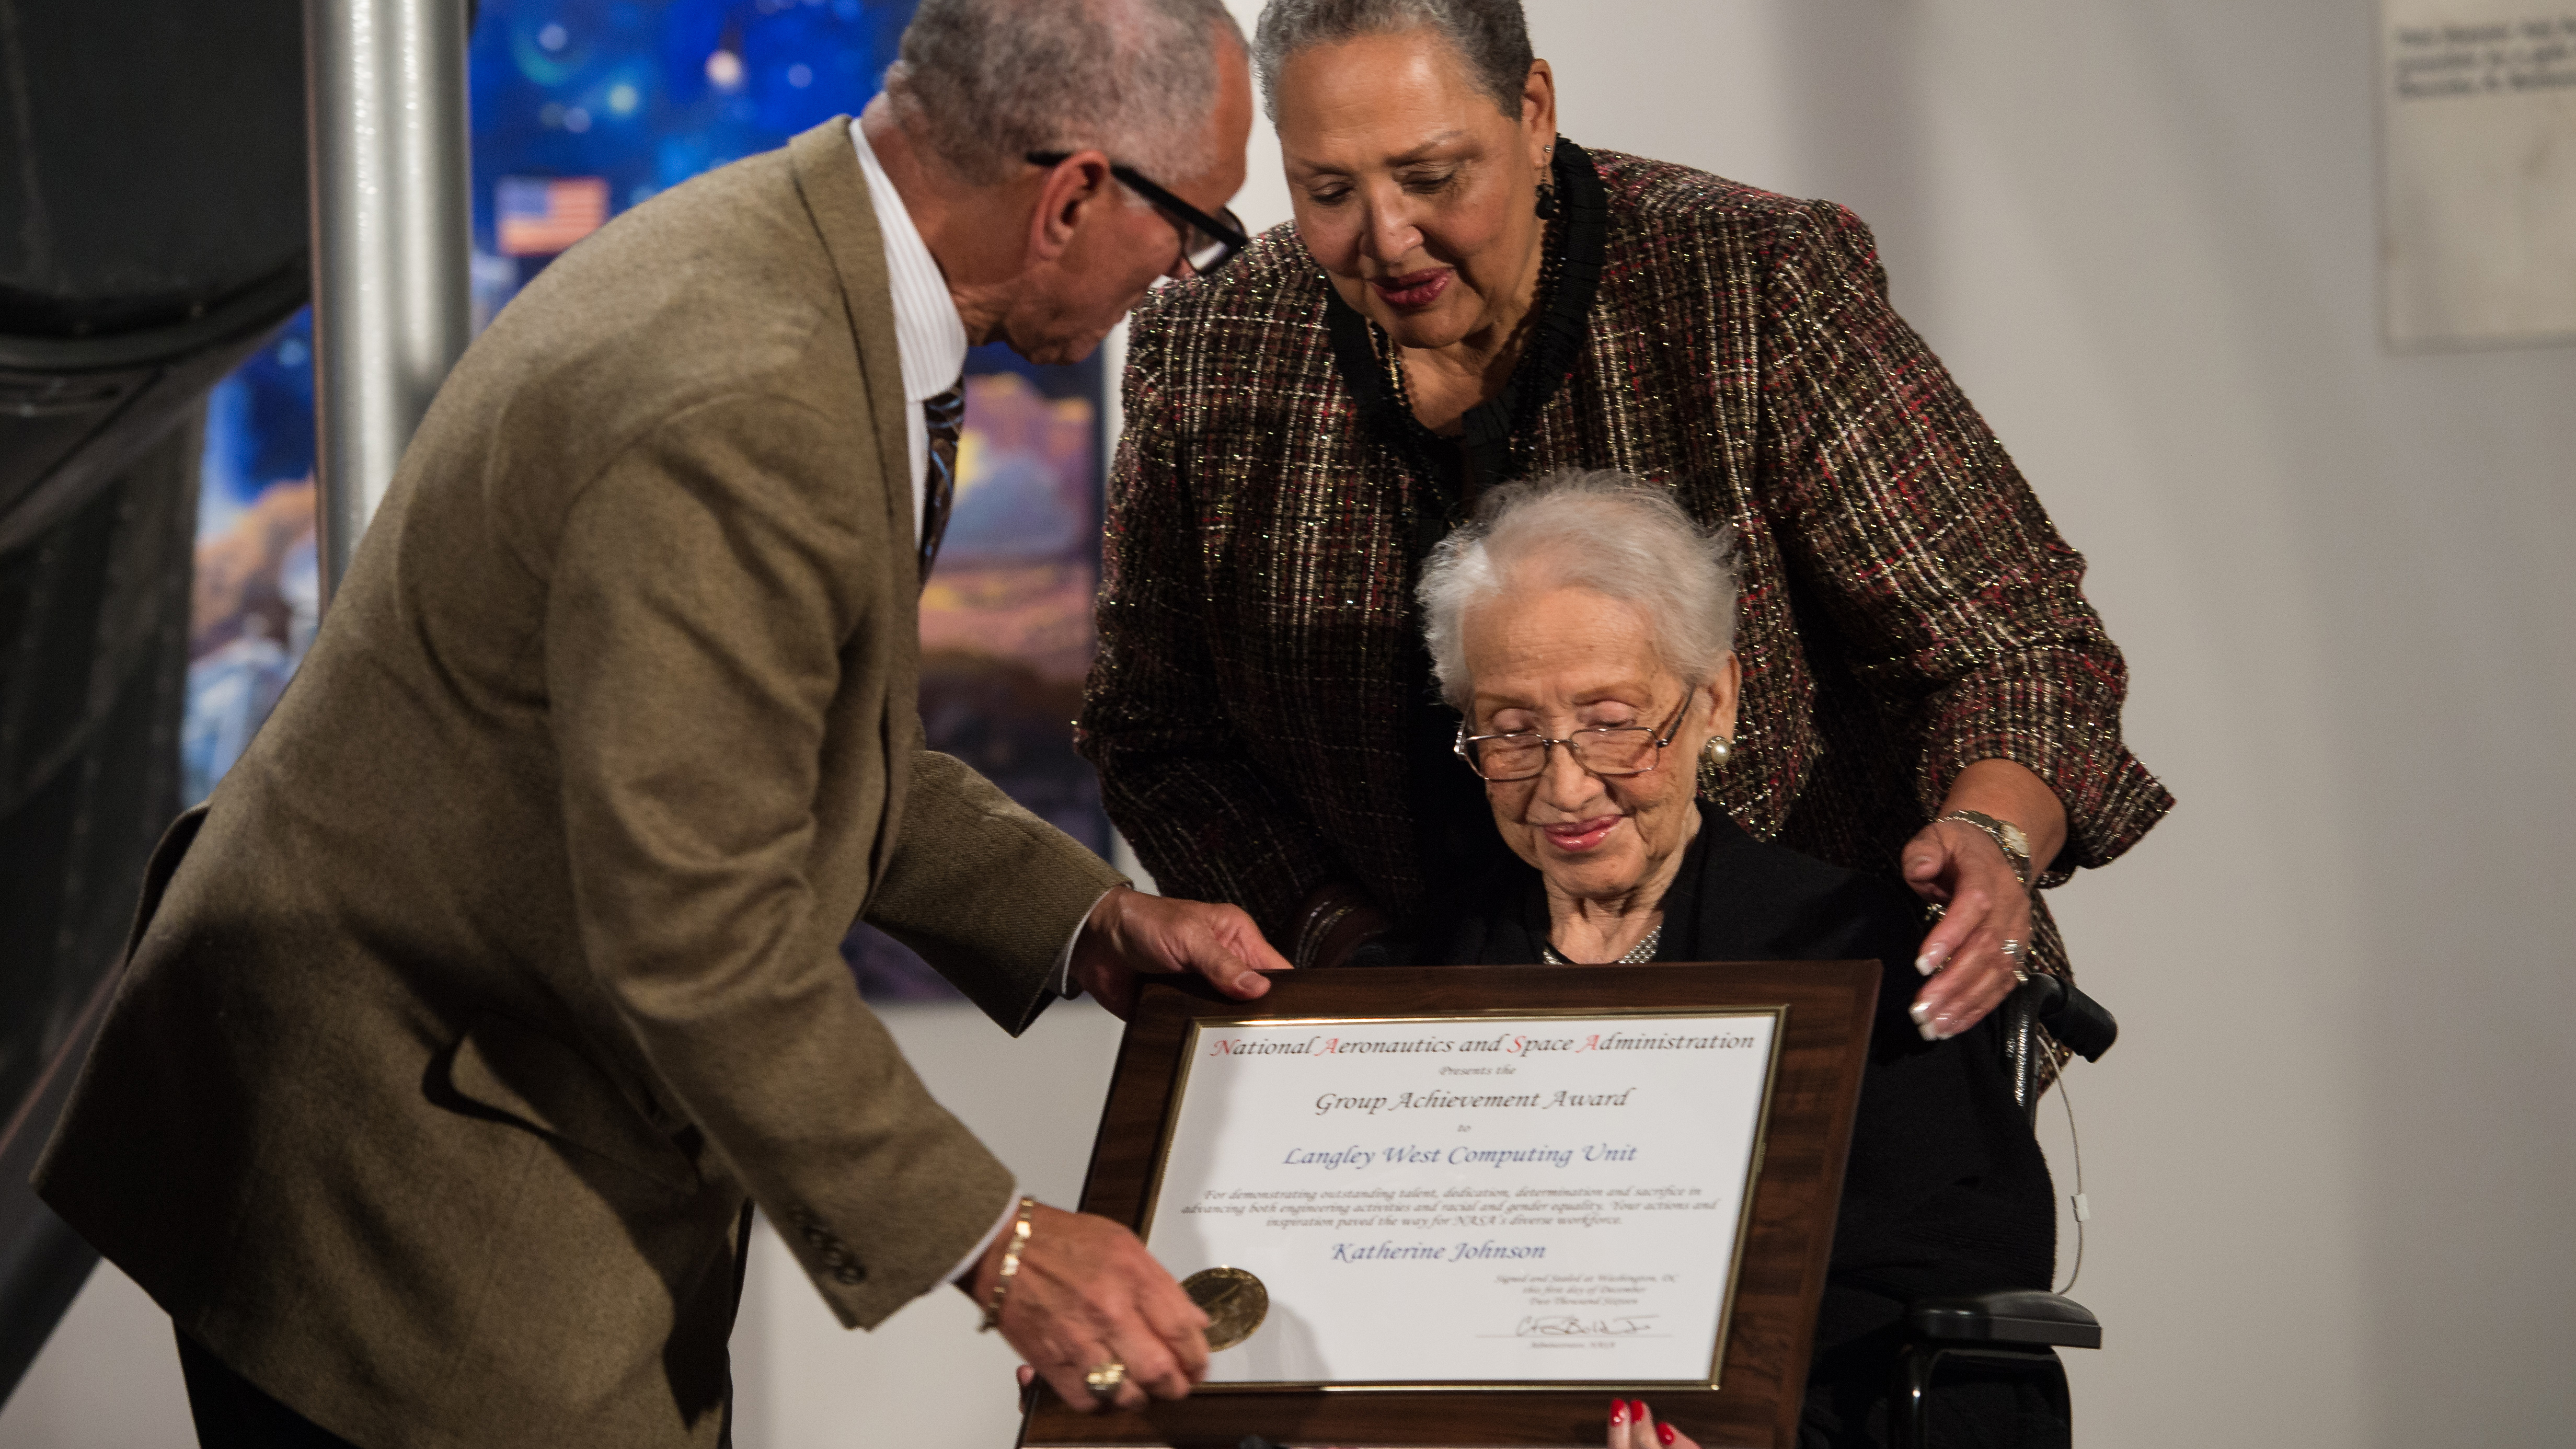 NASA Administrator Charles Bolden presents an award to Katherine Johnson, the African American mathematician, physicist, and space scientist, who calculated flight trajectories for John Glenn's first orbital flight in 1962, at a reception to honor members of the segregated West Area Computers division of Langley Research Center on Thursday, Dec. 1, 2016, at the Virginia Air and Space Center in Hampton, VA. Afterward, the guests attended a premiere of 'Hidden Figures' a film which stars Taraji P. Henson as Katherine Johnson, Octavia Spencer as Dorothy Vaughan, and Janelle Monae as Mary Jackson. Photo Credit: (NASA/Aubrey Gemignani)